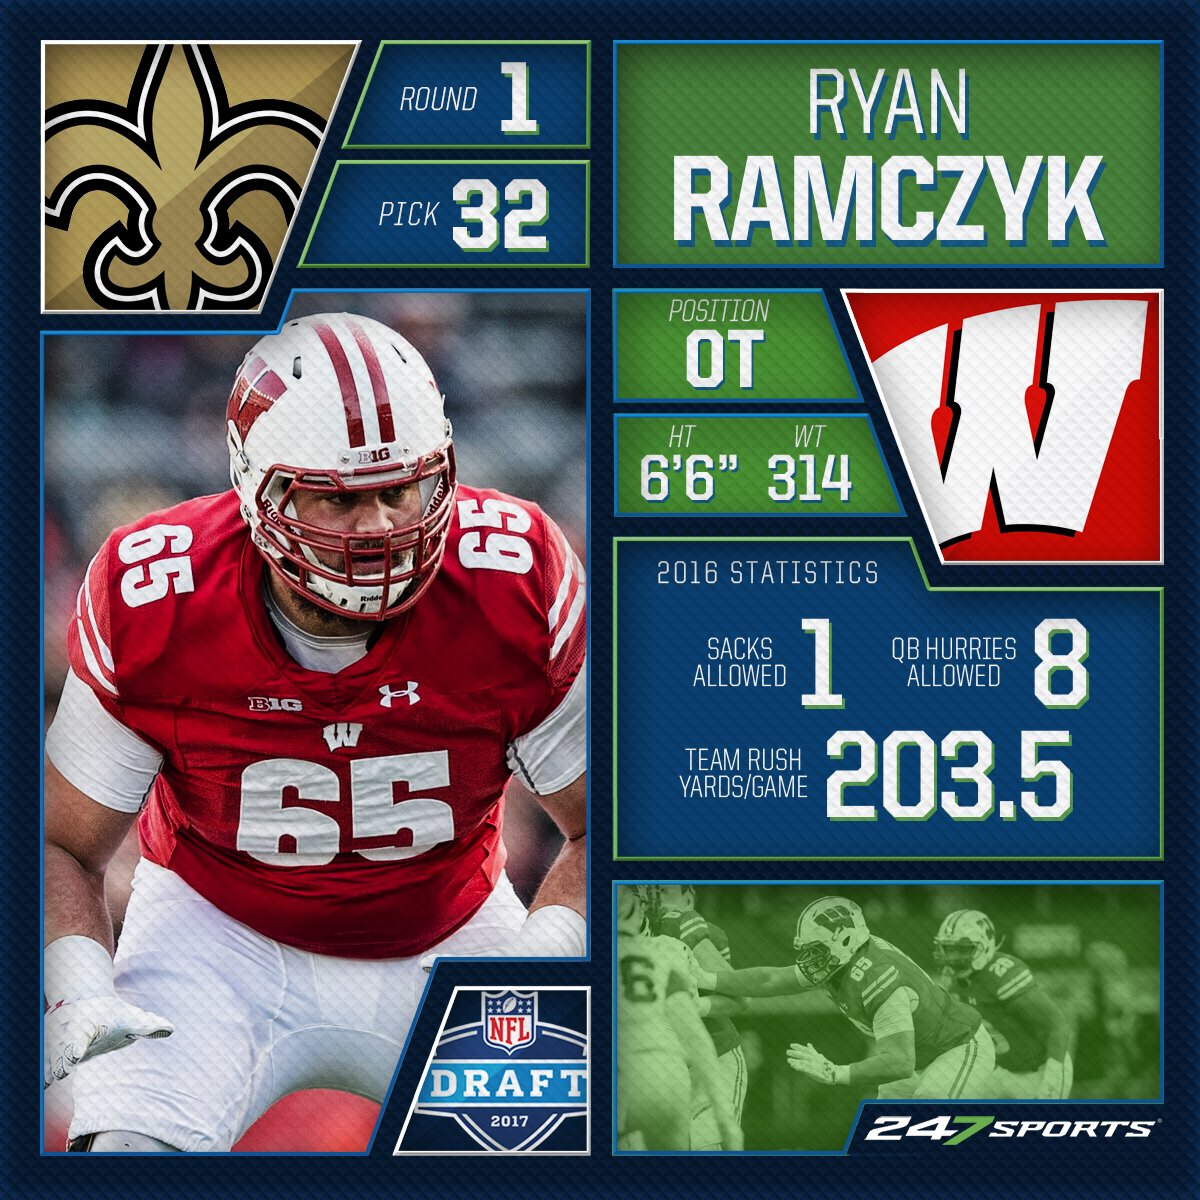 With the 32nd pick in the #NFLDraft, the Saints select Ryan Ramczyk. h...